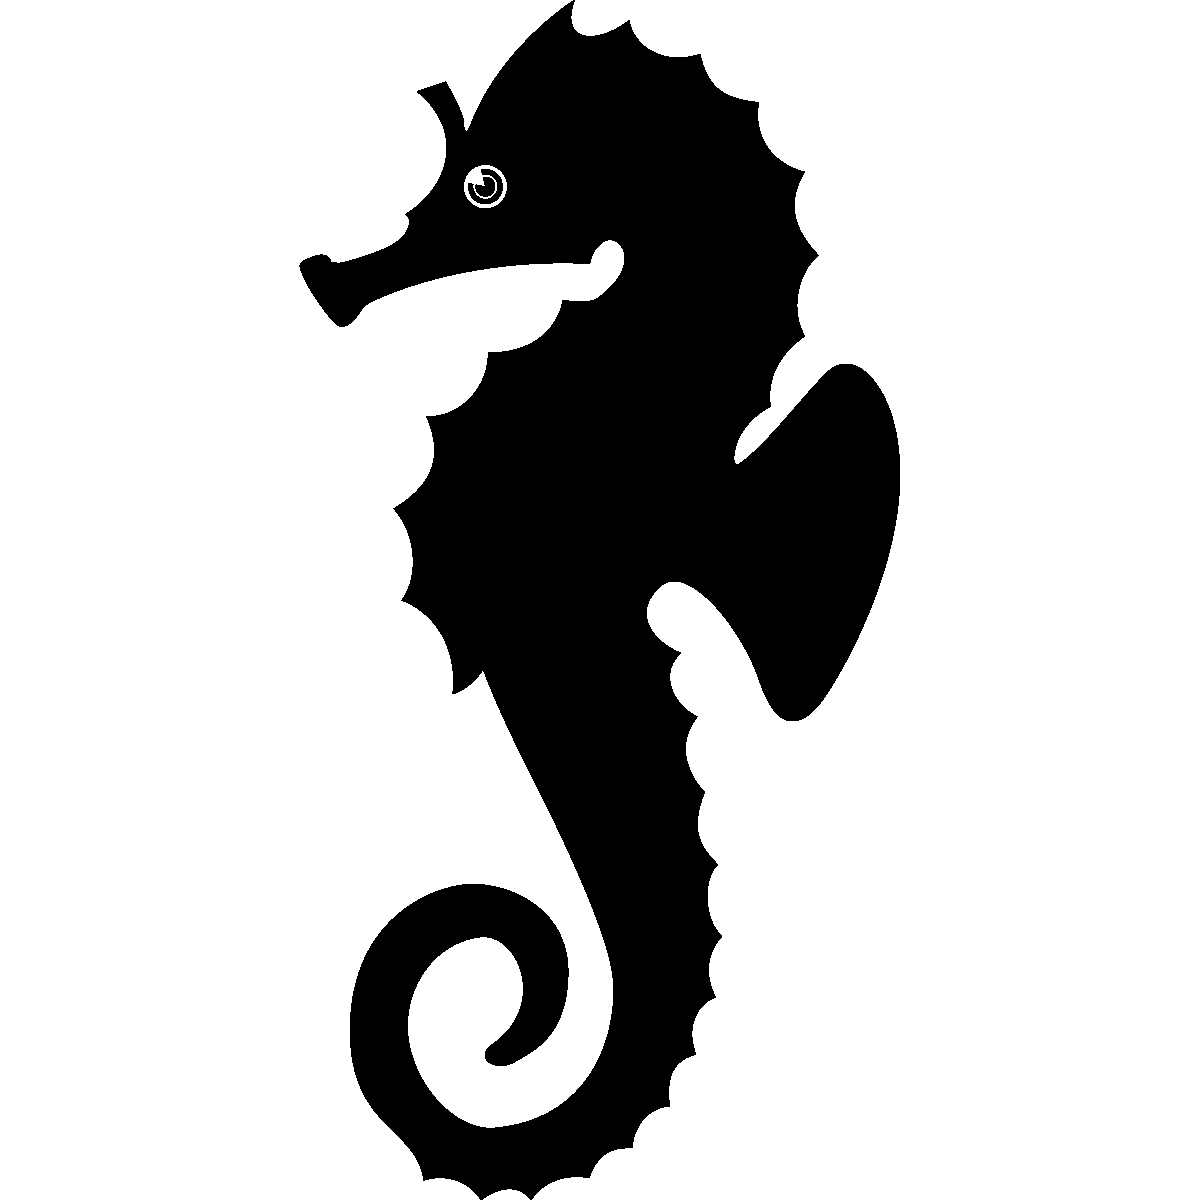 Ariel vector seahorse. Bathroom wall decals decal